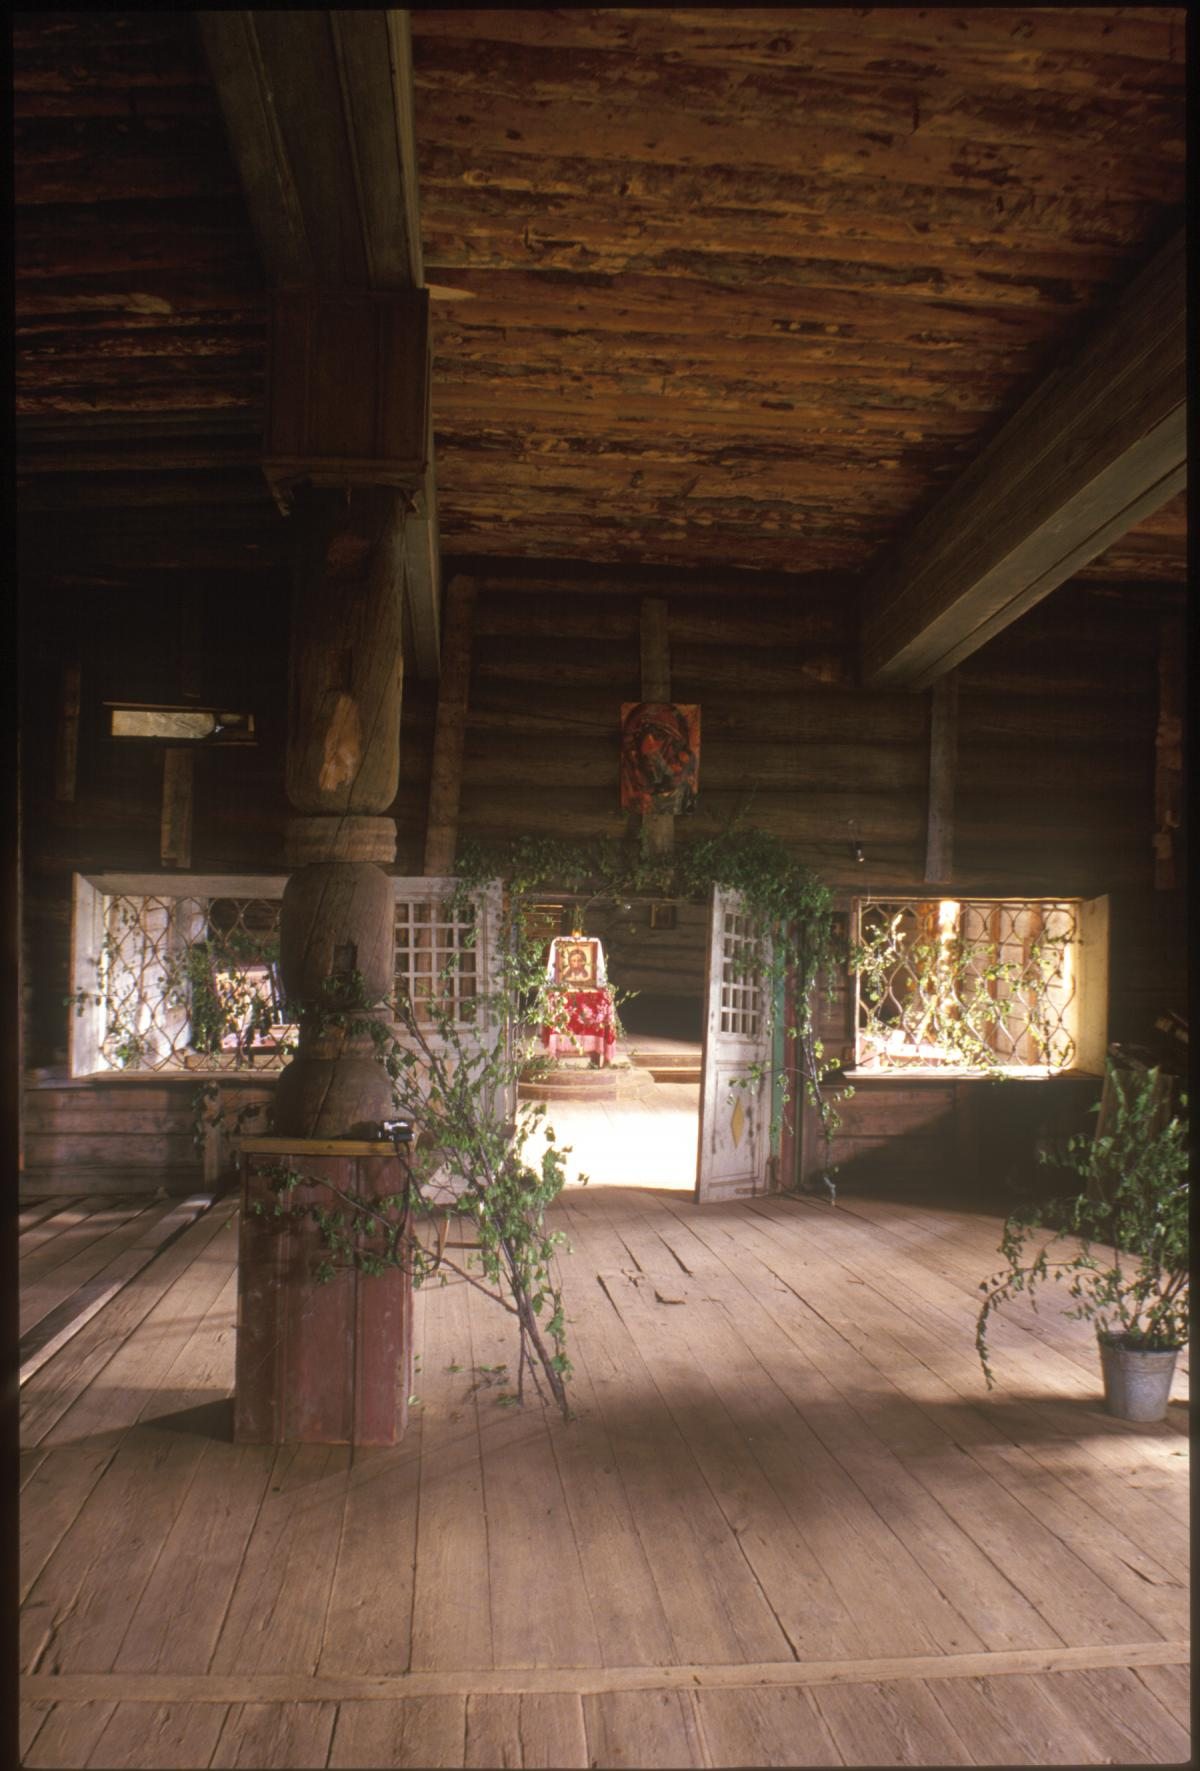 photograph of inside of church, everything made of wood